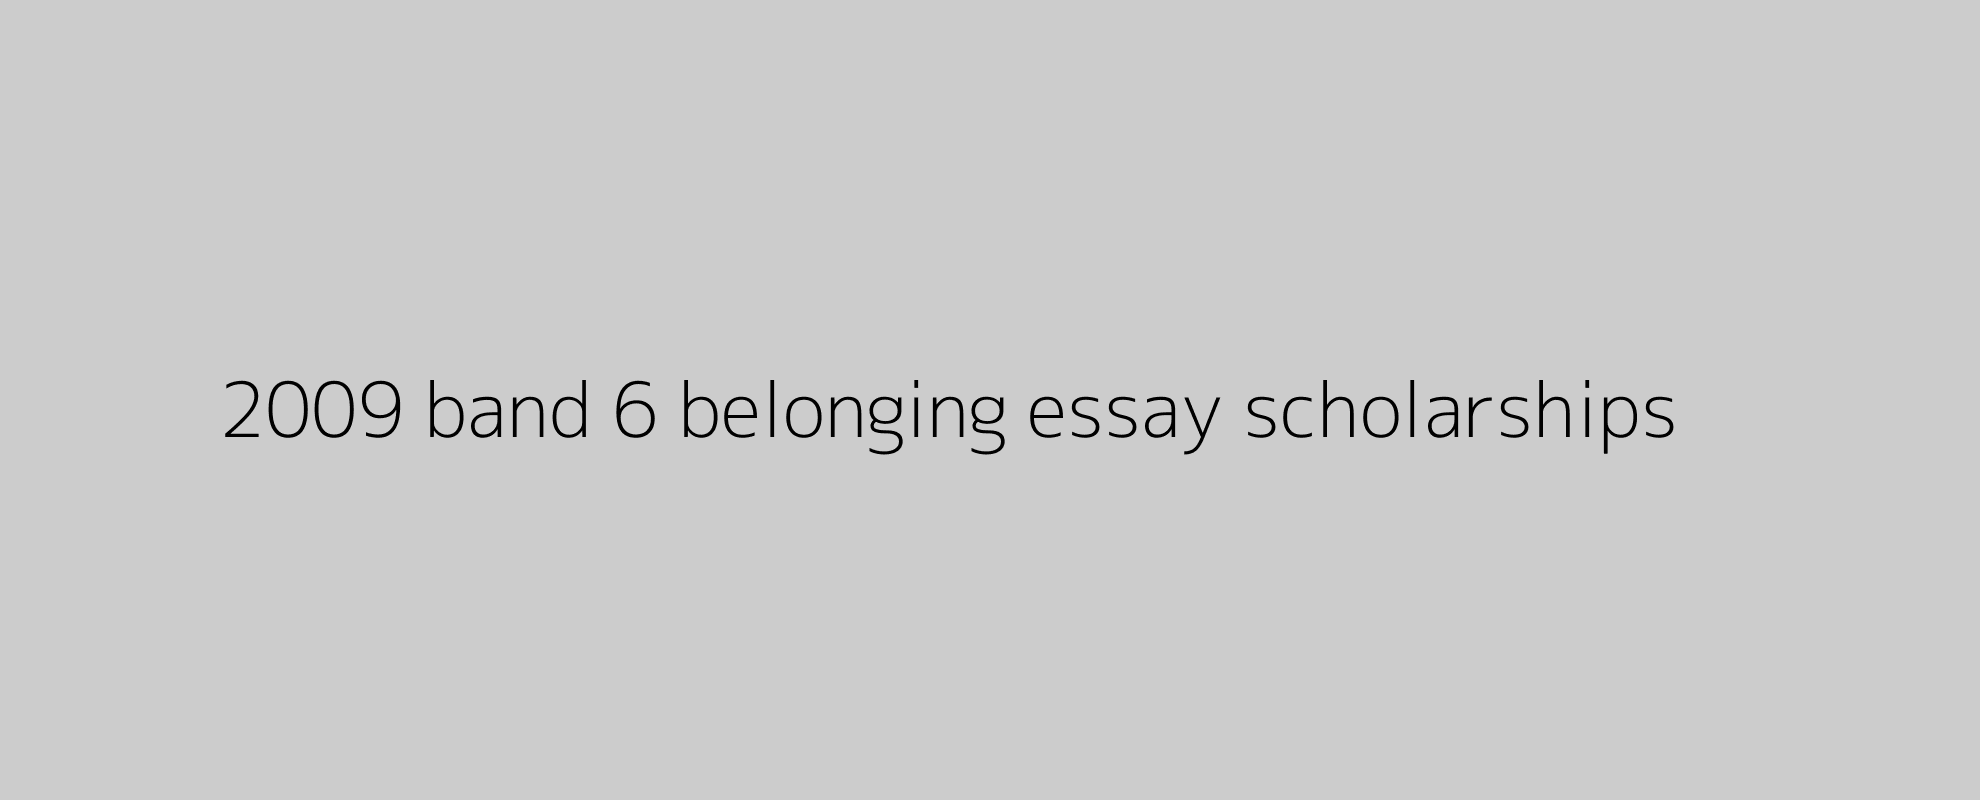 2009 band 6 belonging essay scholarships